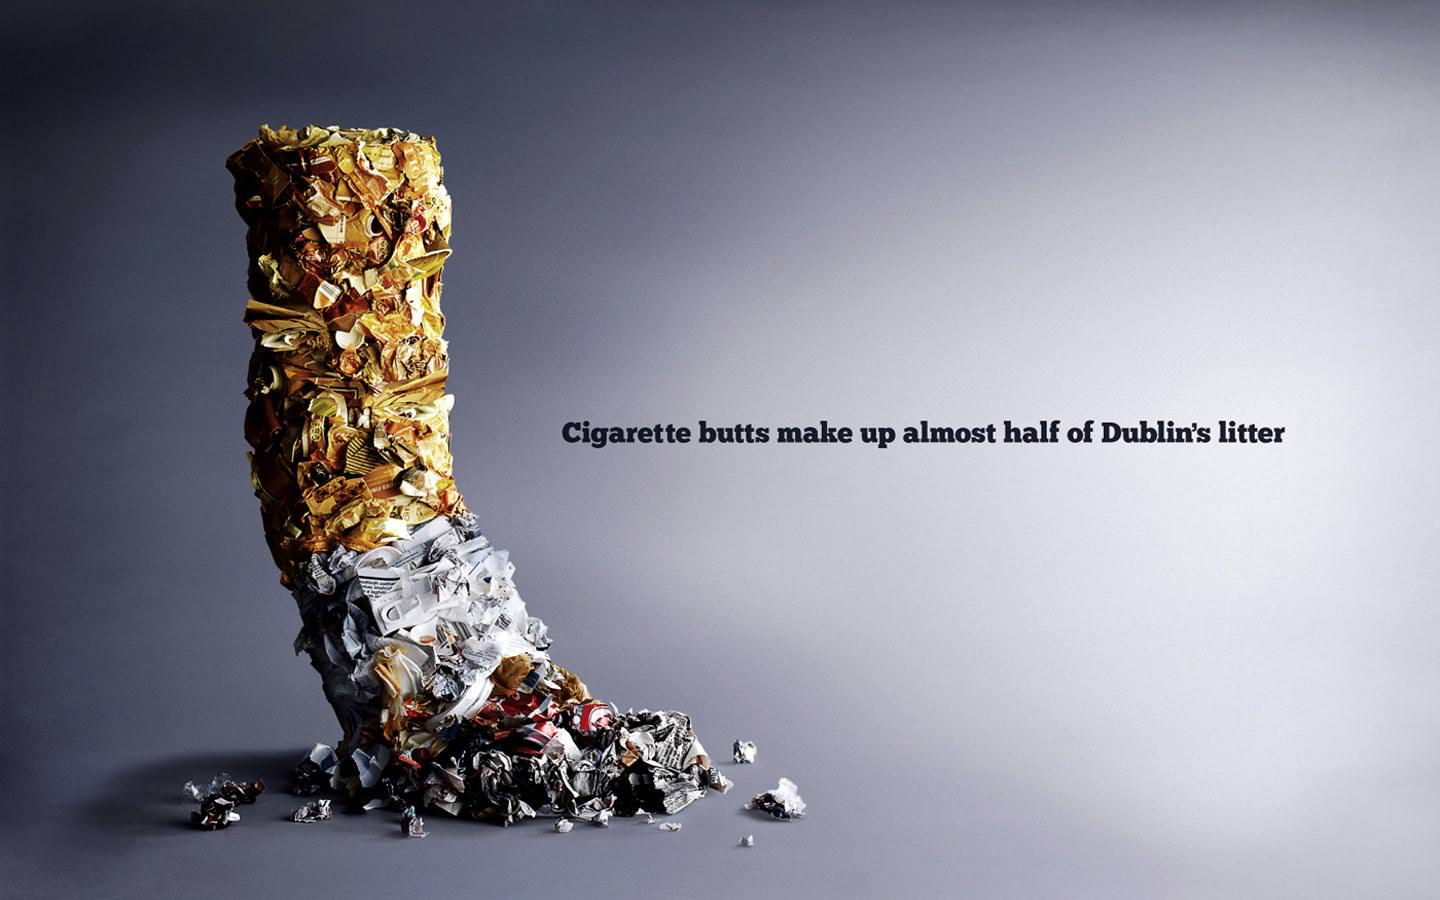 Cigarette butts make up almost half of Dublin`s litter